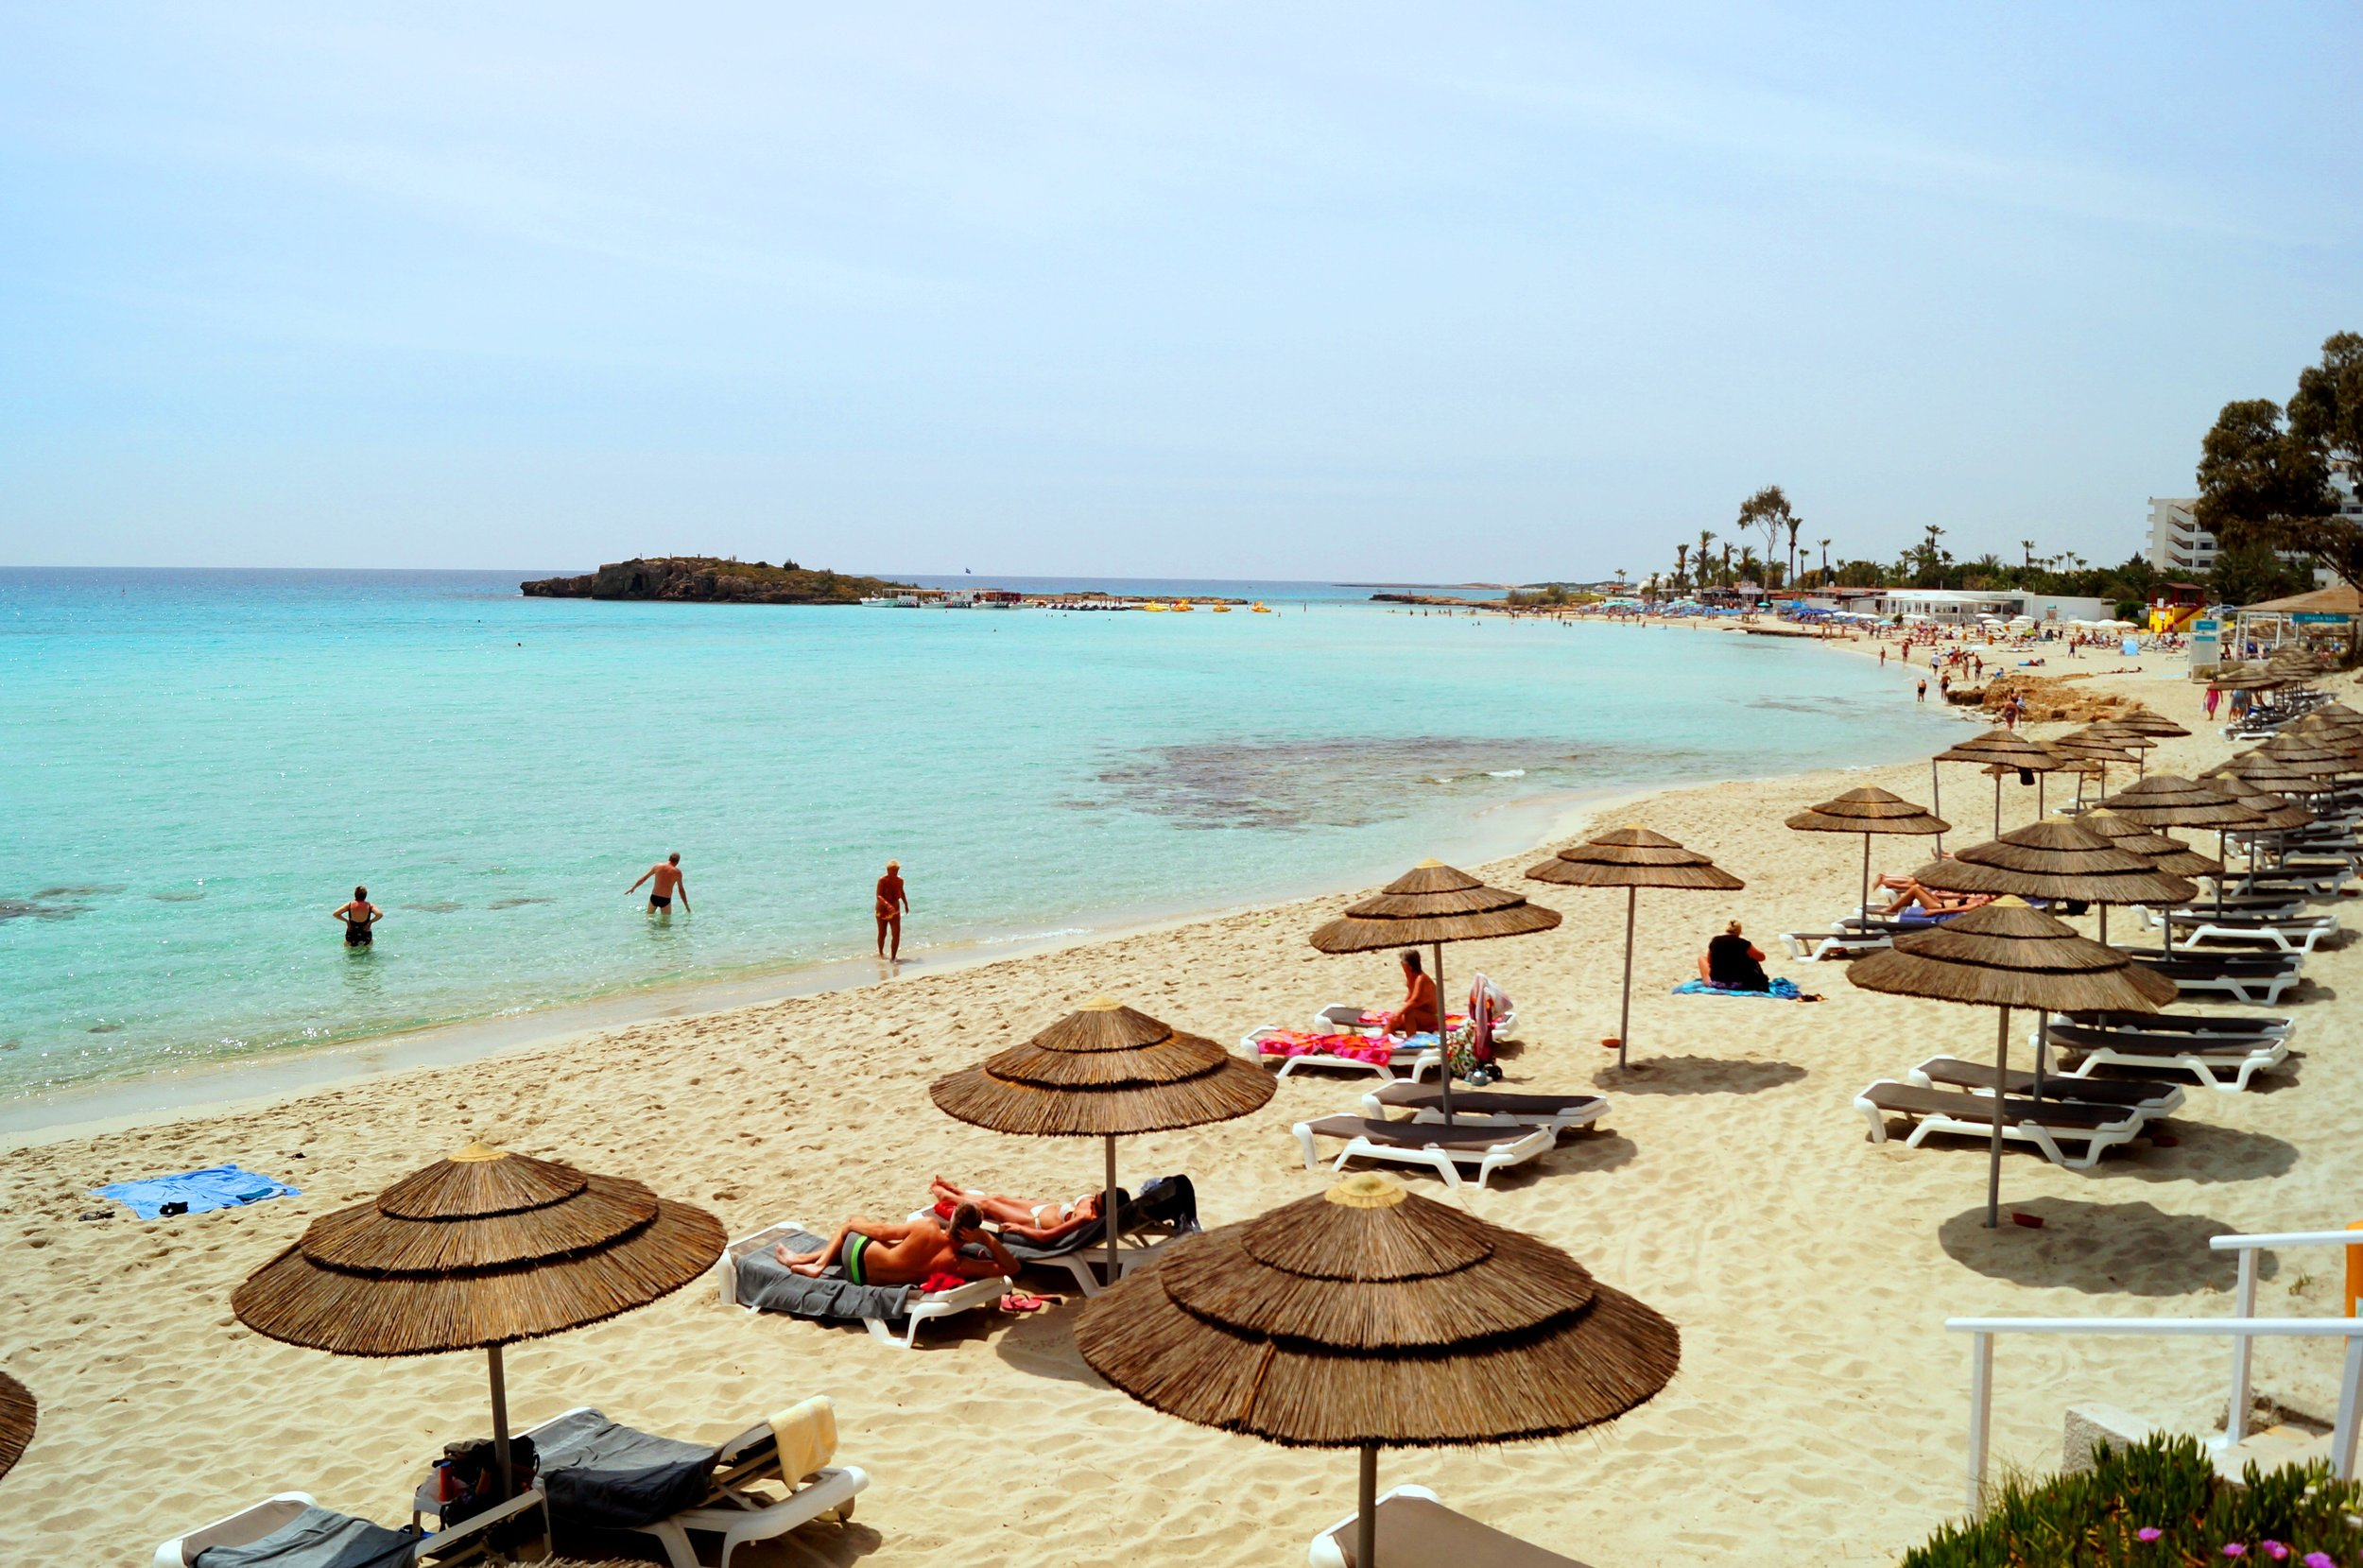 Ayia Napa may be known for its party scene, but this Cypriot resort is also home to one of Europe's finest beaches. Image credit:  CTO Zurich / Creative Commons